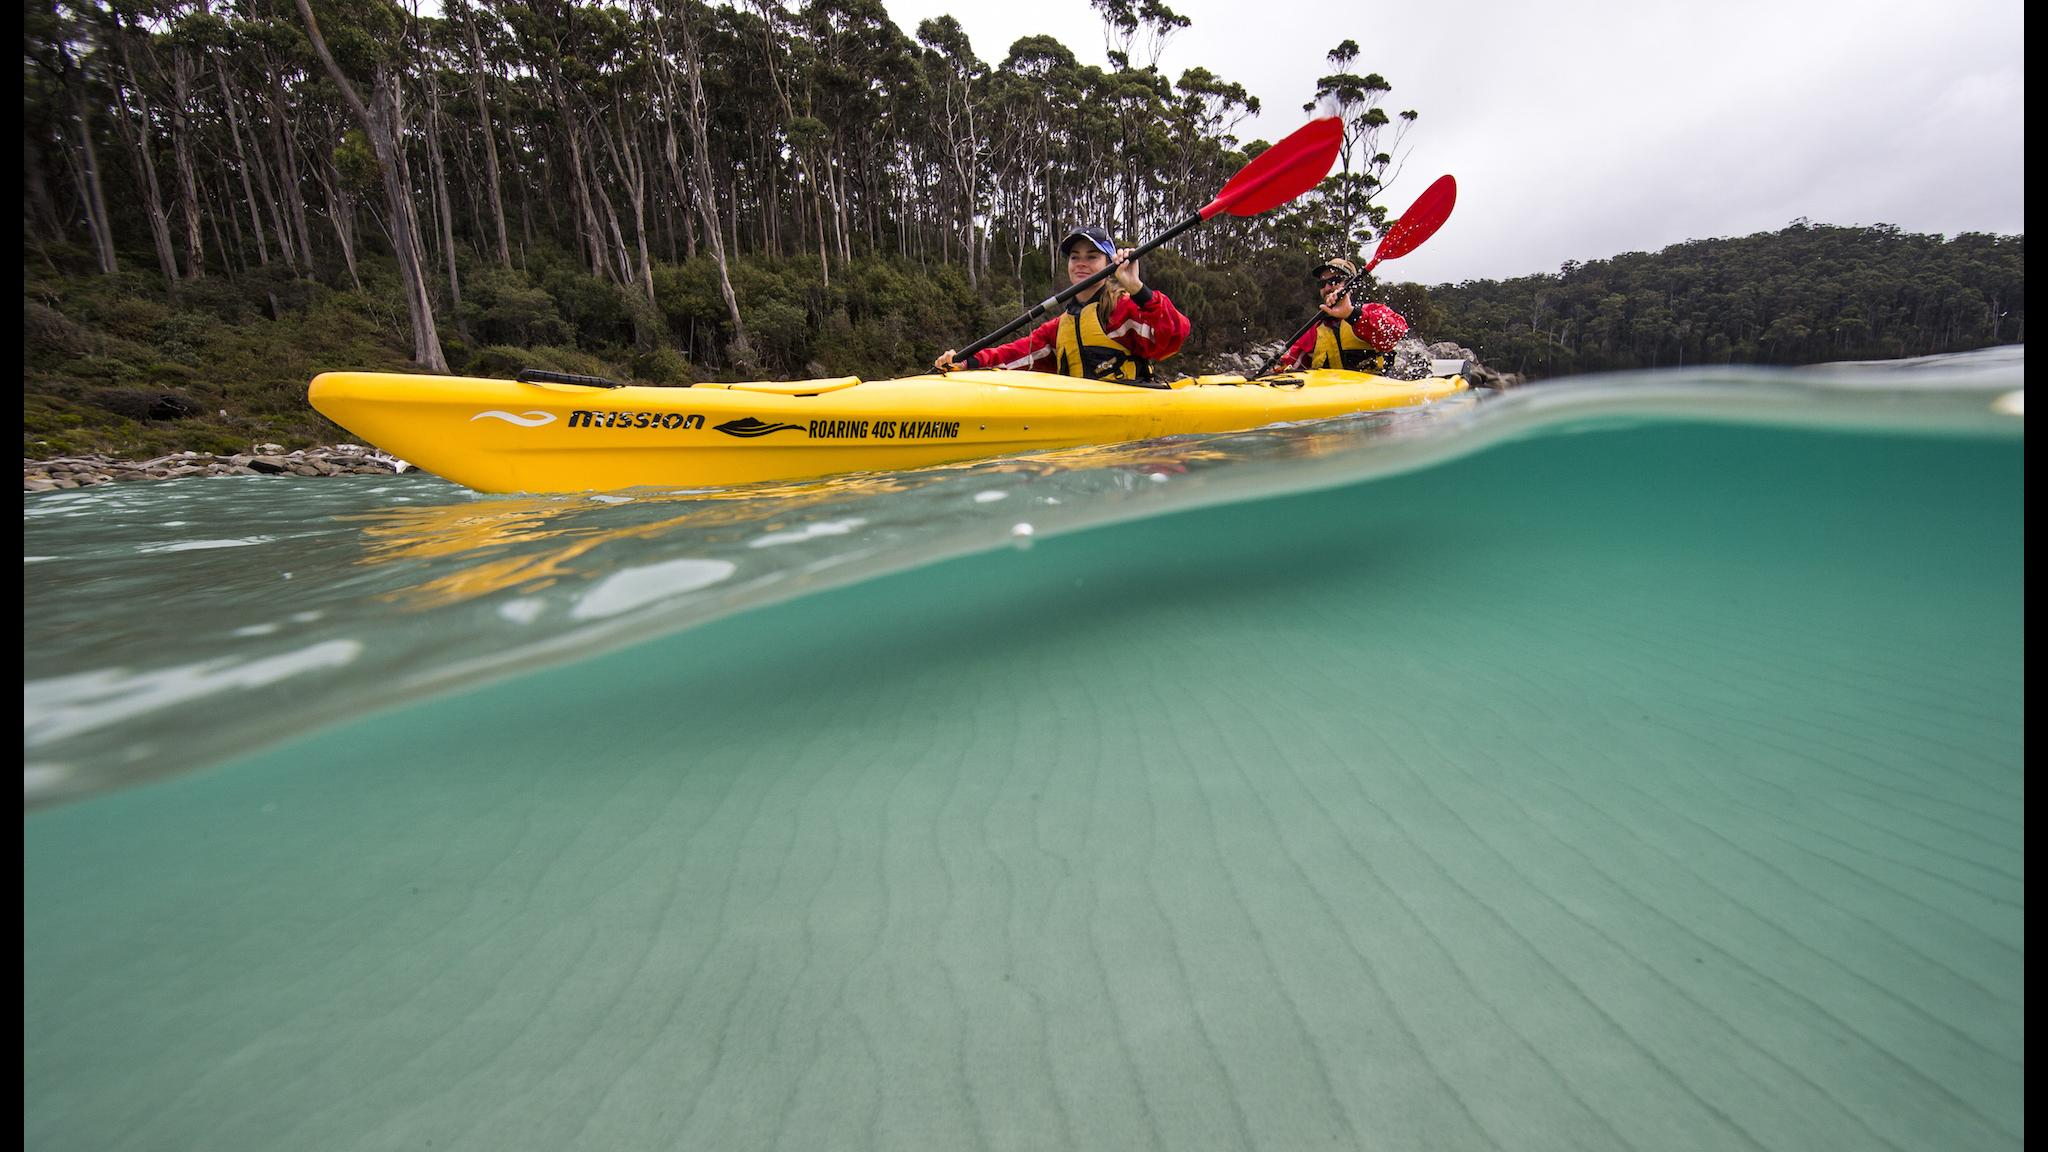 Roaring 40s Kayaking - Kayaking at Port Arthur, Tasman Peninsula, Tasmania